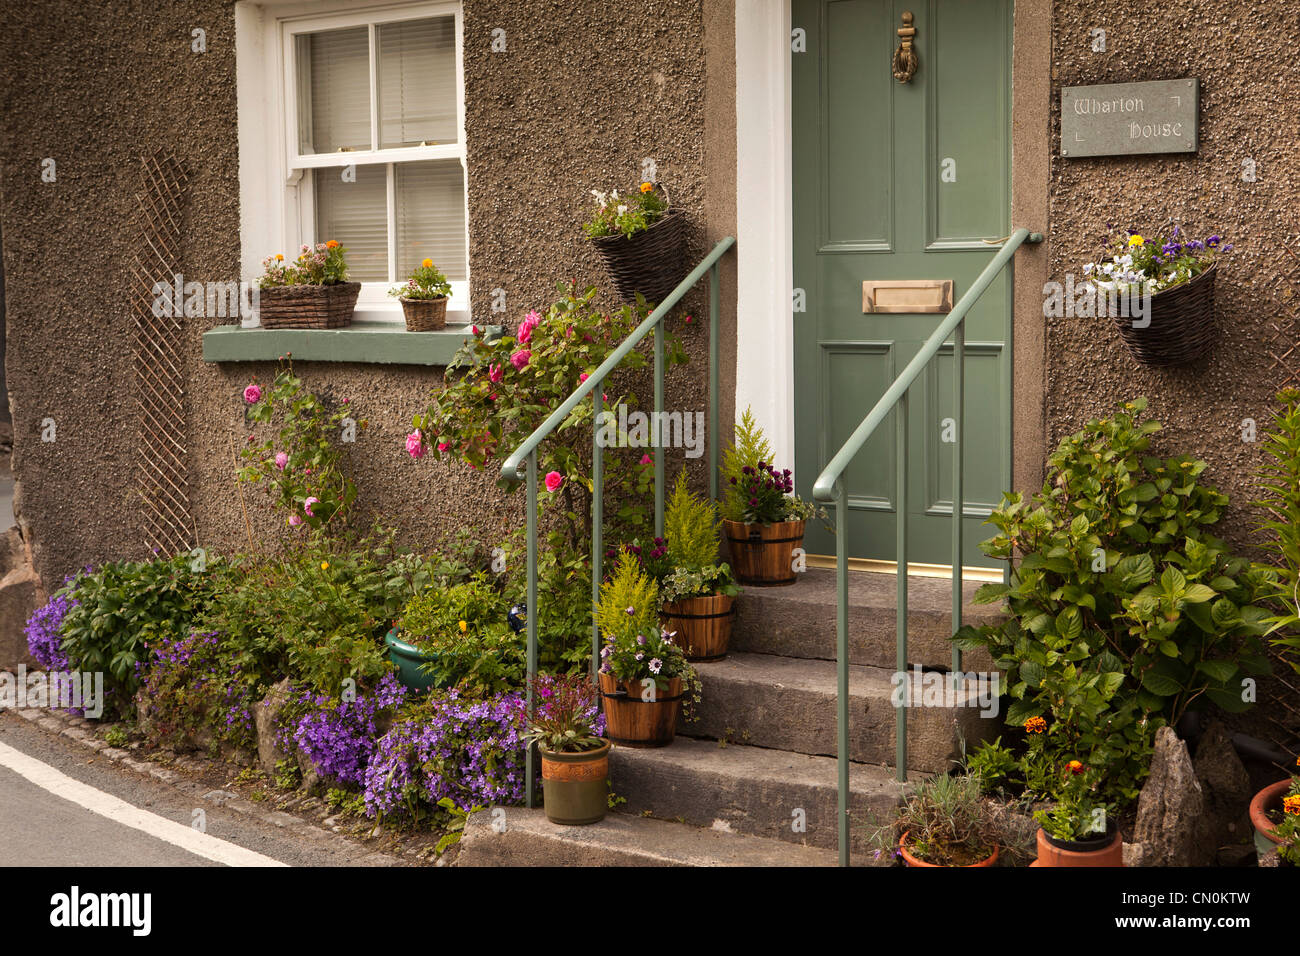 UK, Cumbria, Cartmel very small front garden in flower ...